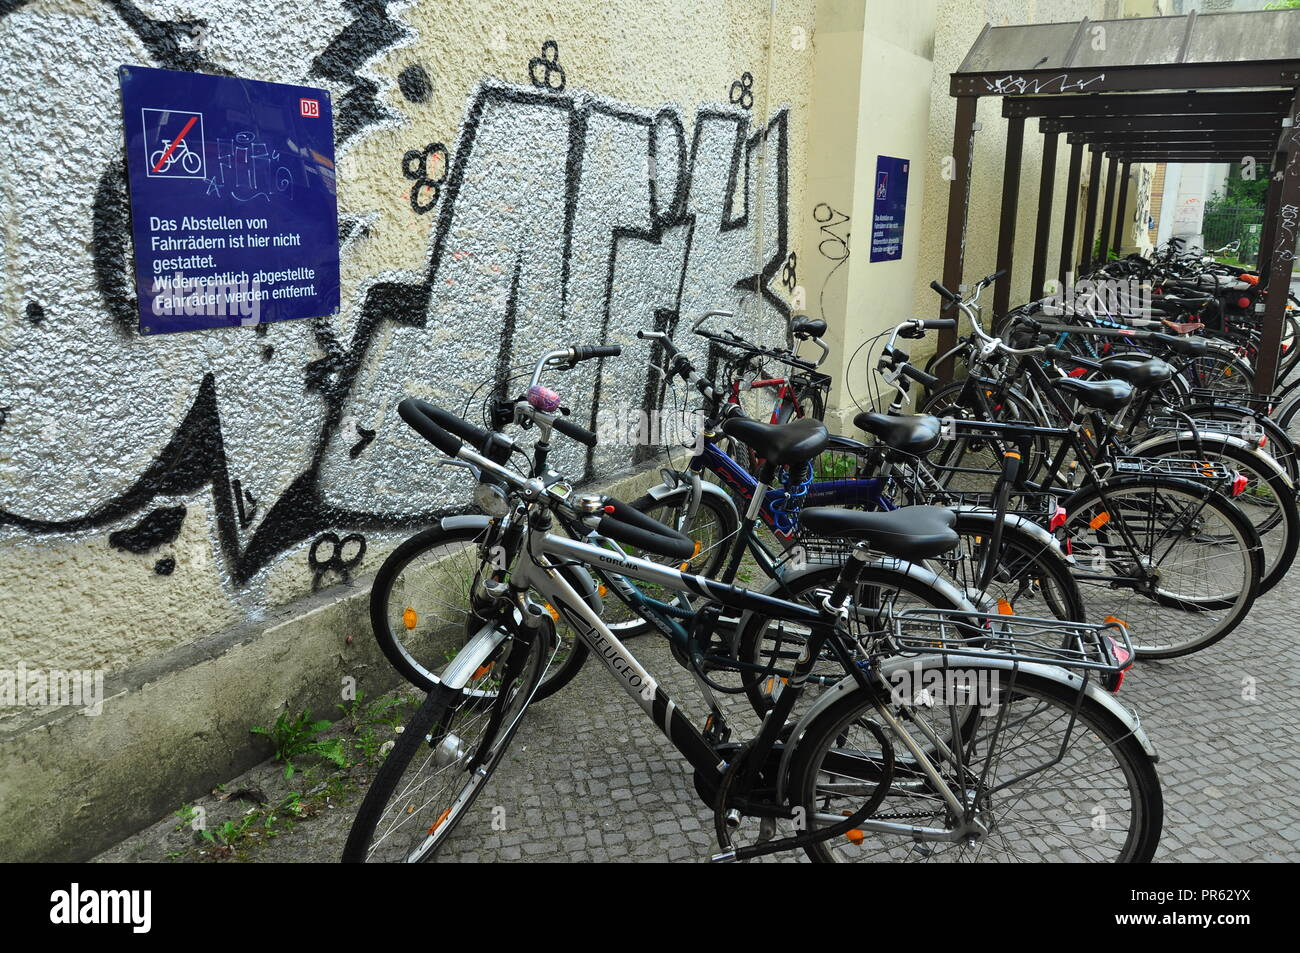 Some violation of rules in Germany. Parked bikes in a forbidden zone. - Stock Image